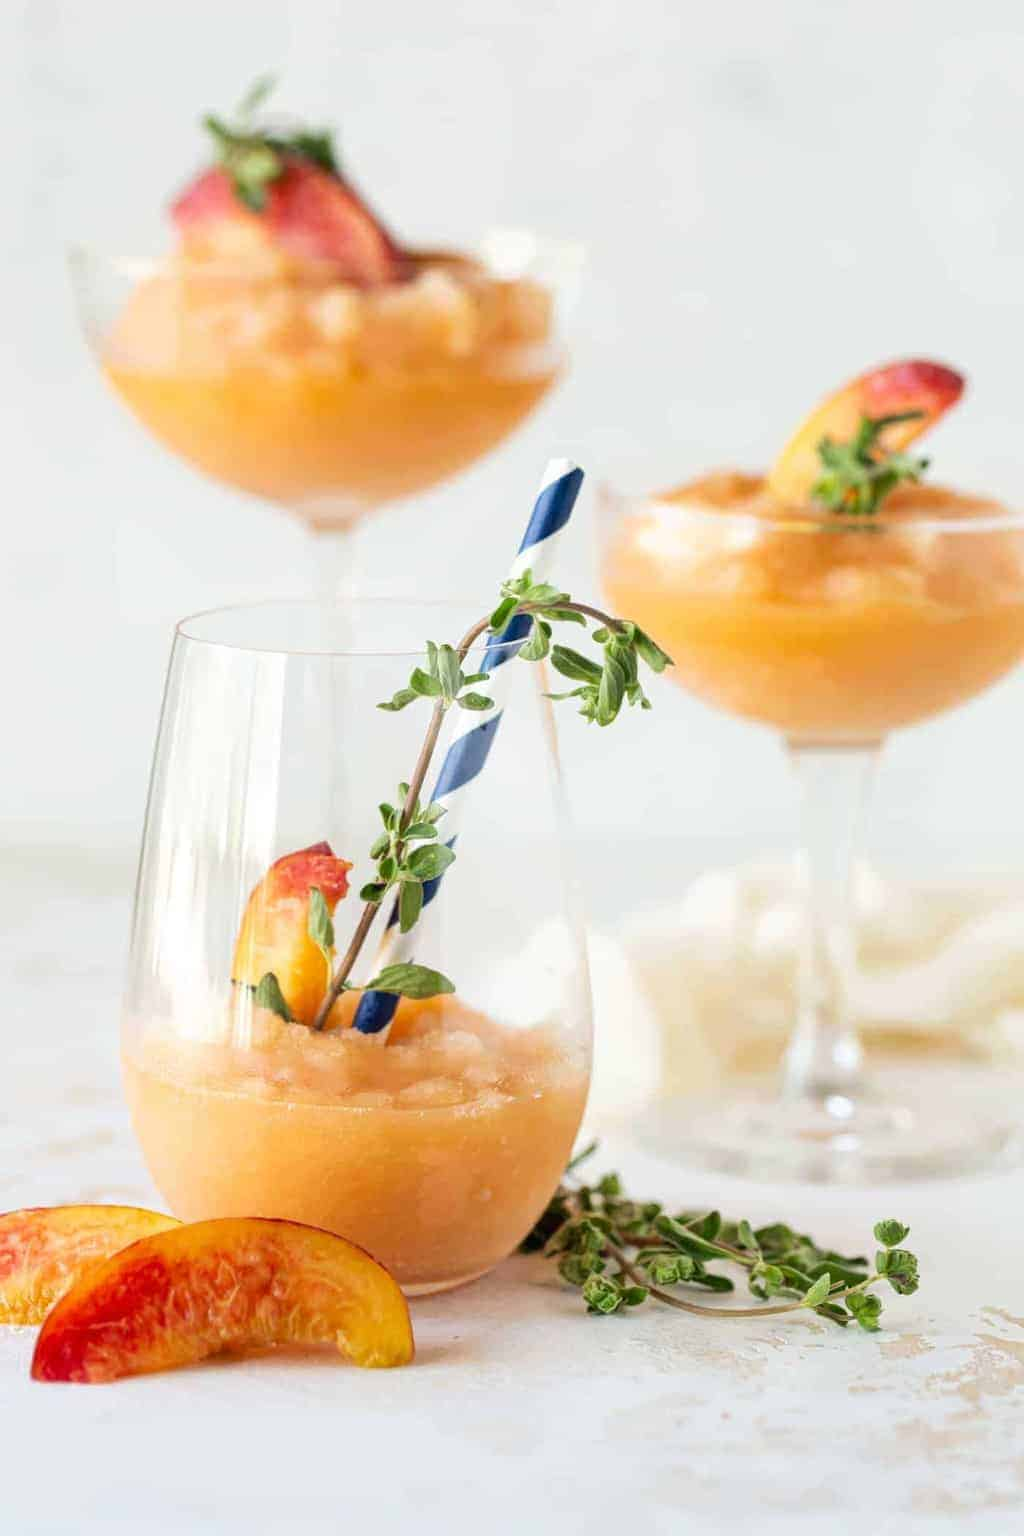 Three different cocktail glasses filled with Peach Frosé and garnished with fresh marjoram and fresh peach wedges.